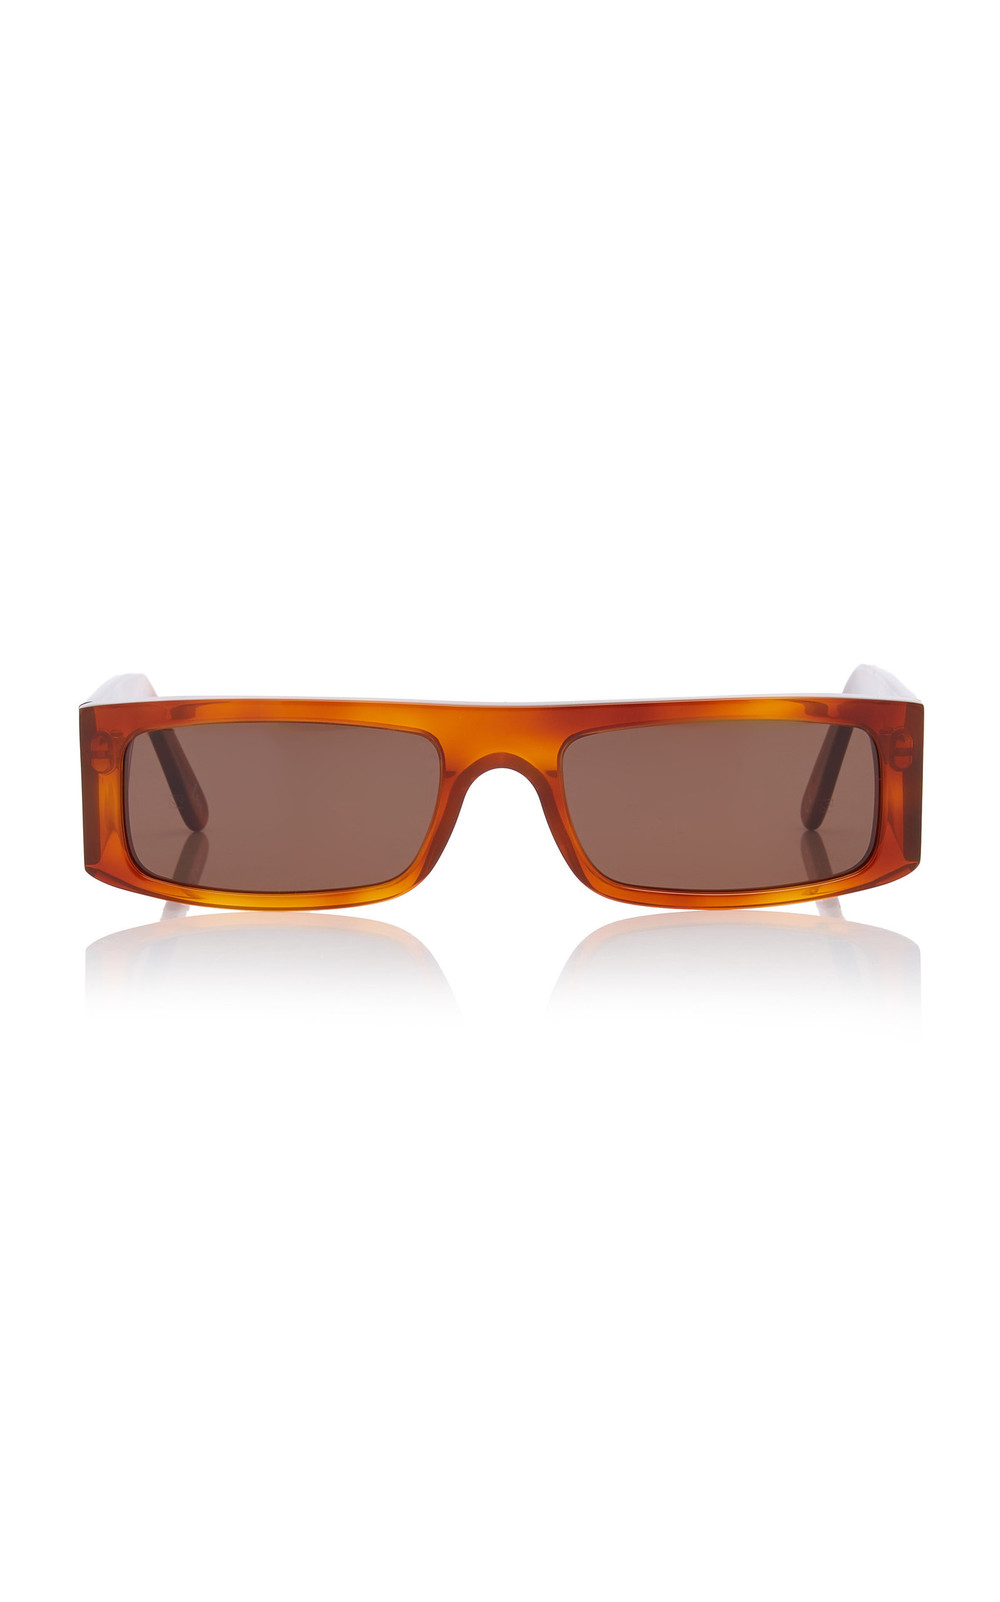 Andy Wolf Eyewear Hume Sun Square-Frame Acetate Sunglasses in brown